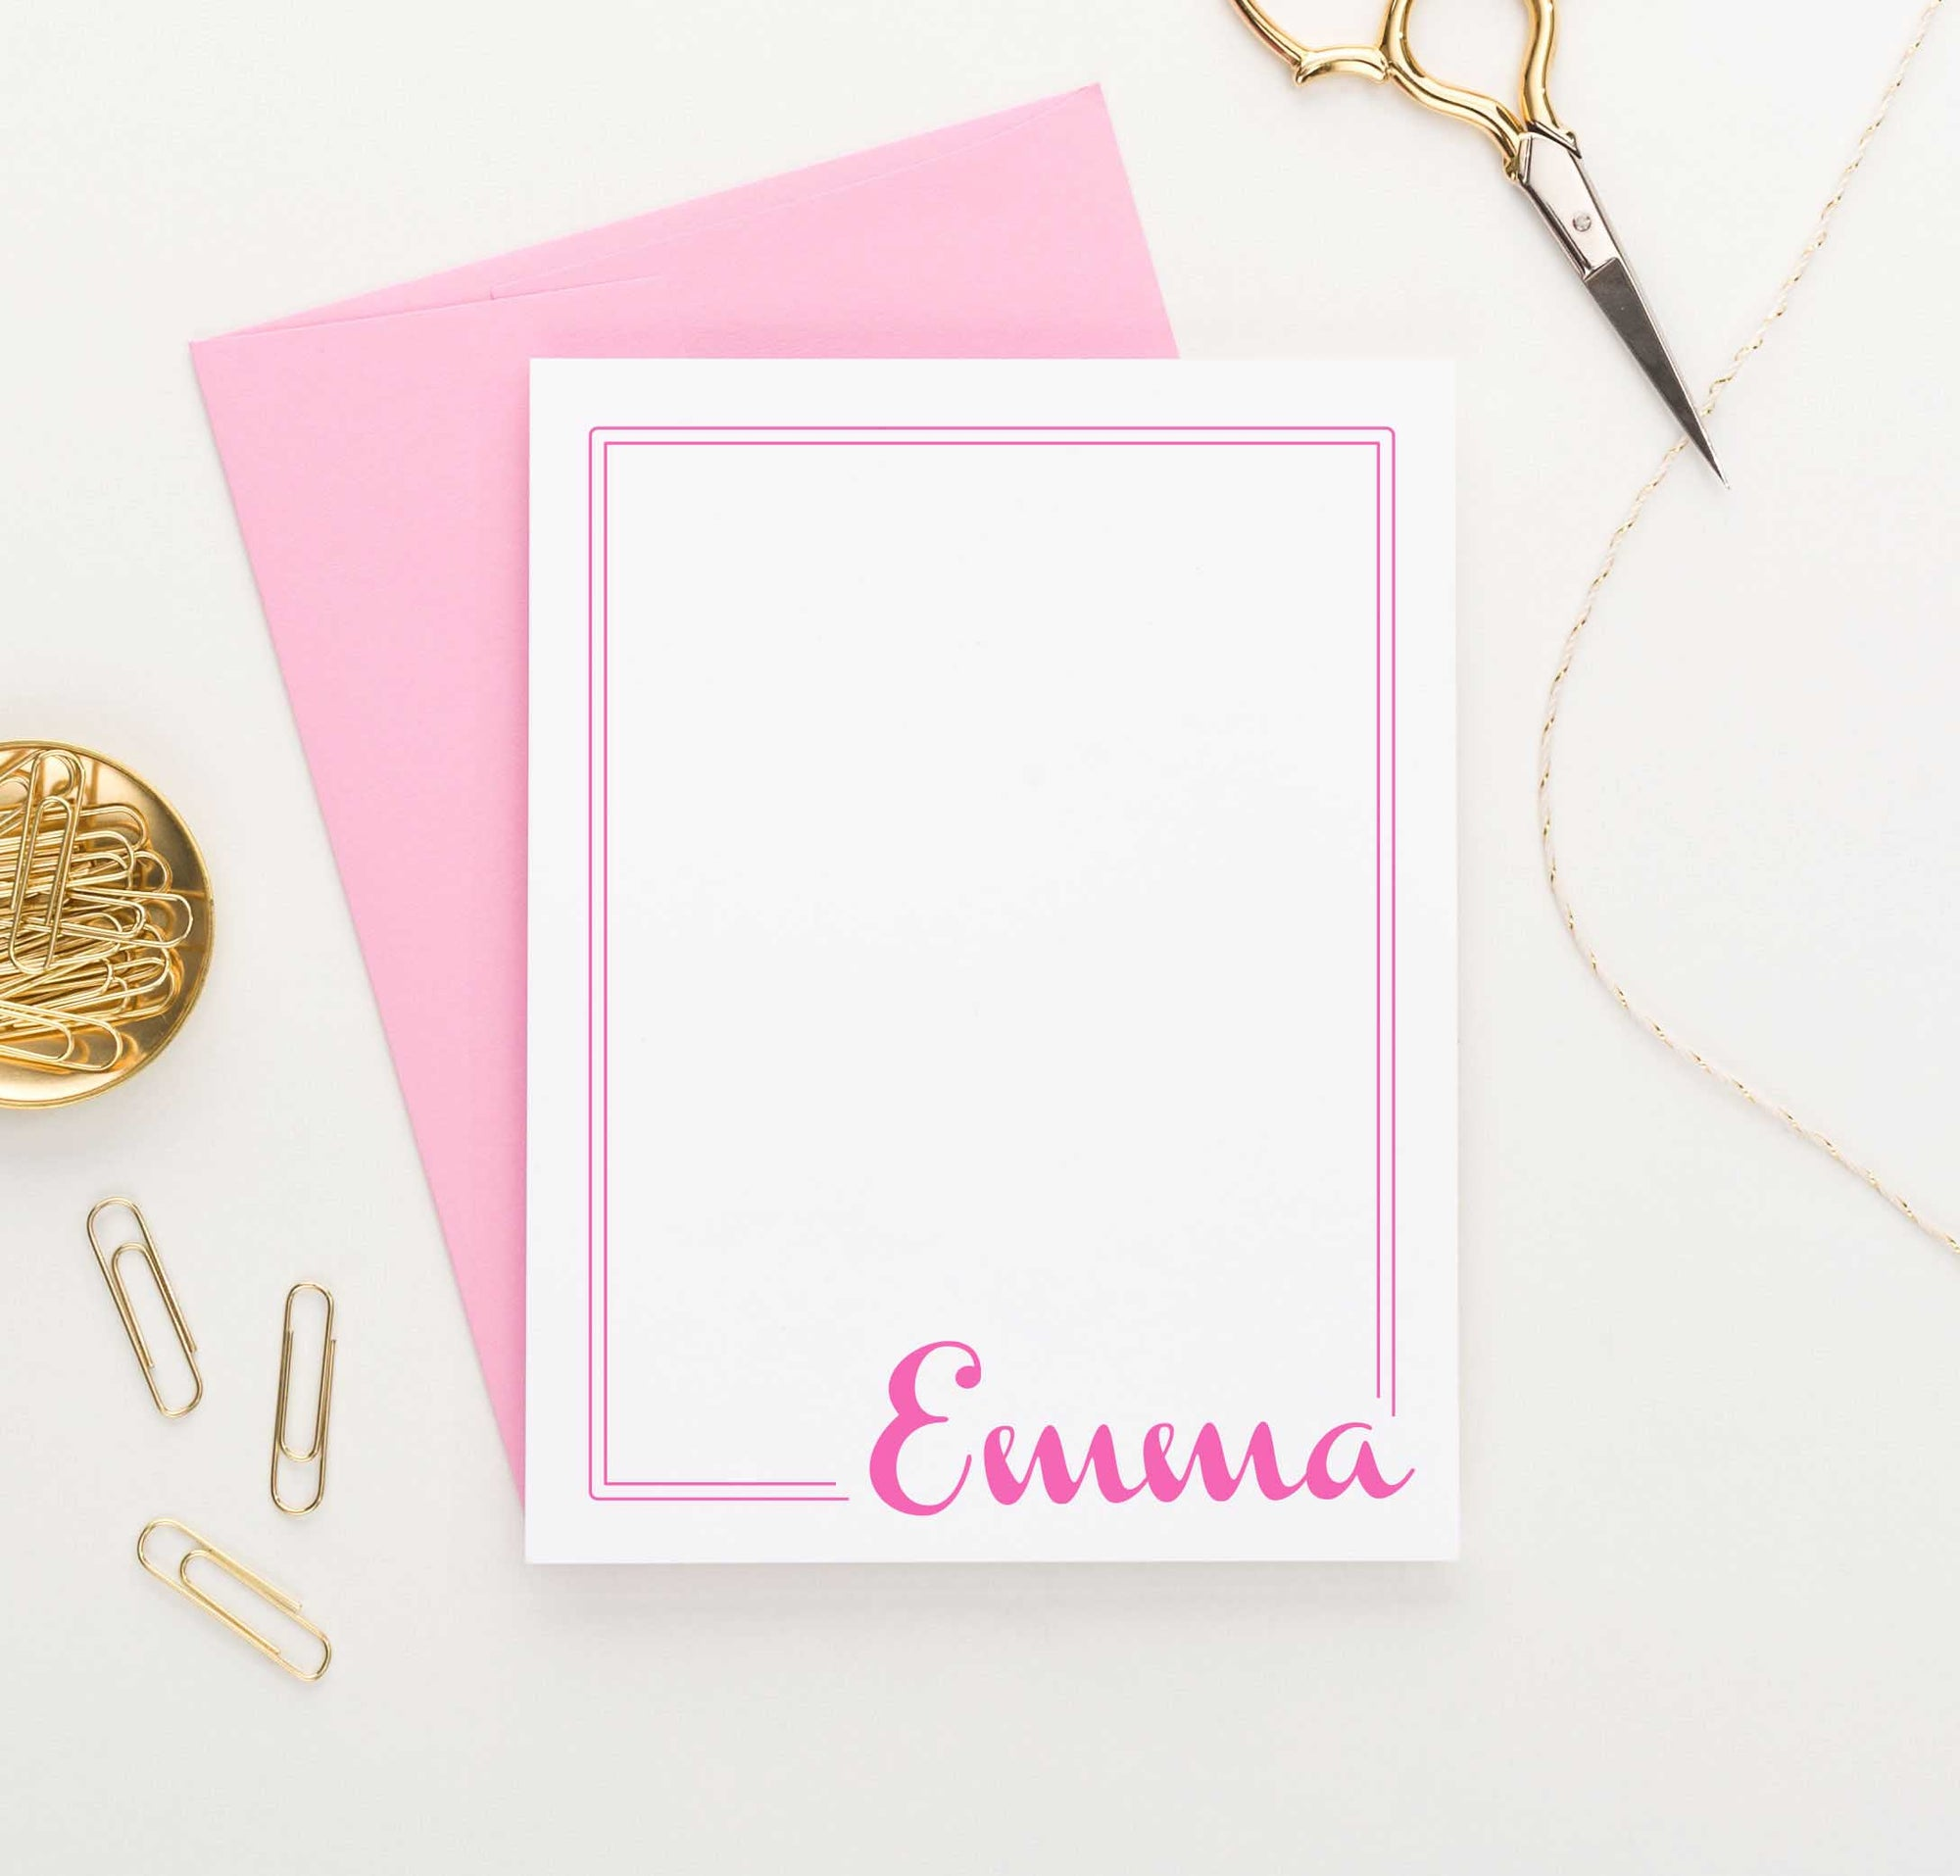 KS014 simple name and border stationary personalized for kids simple 2